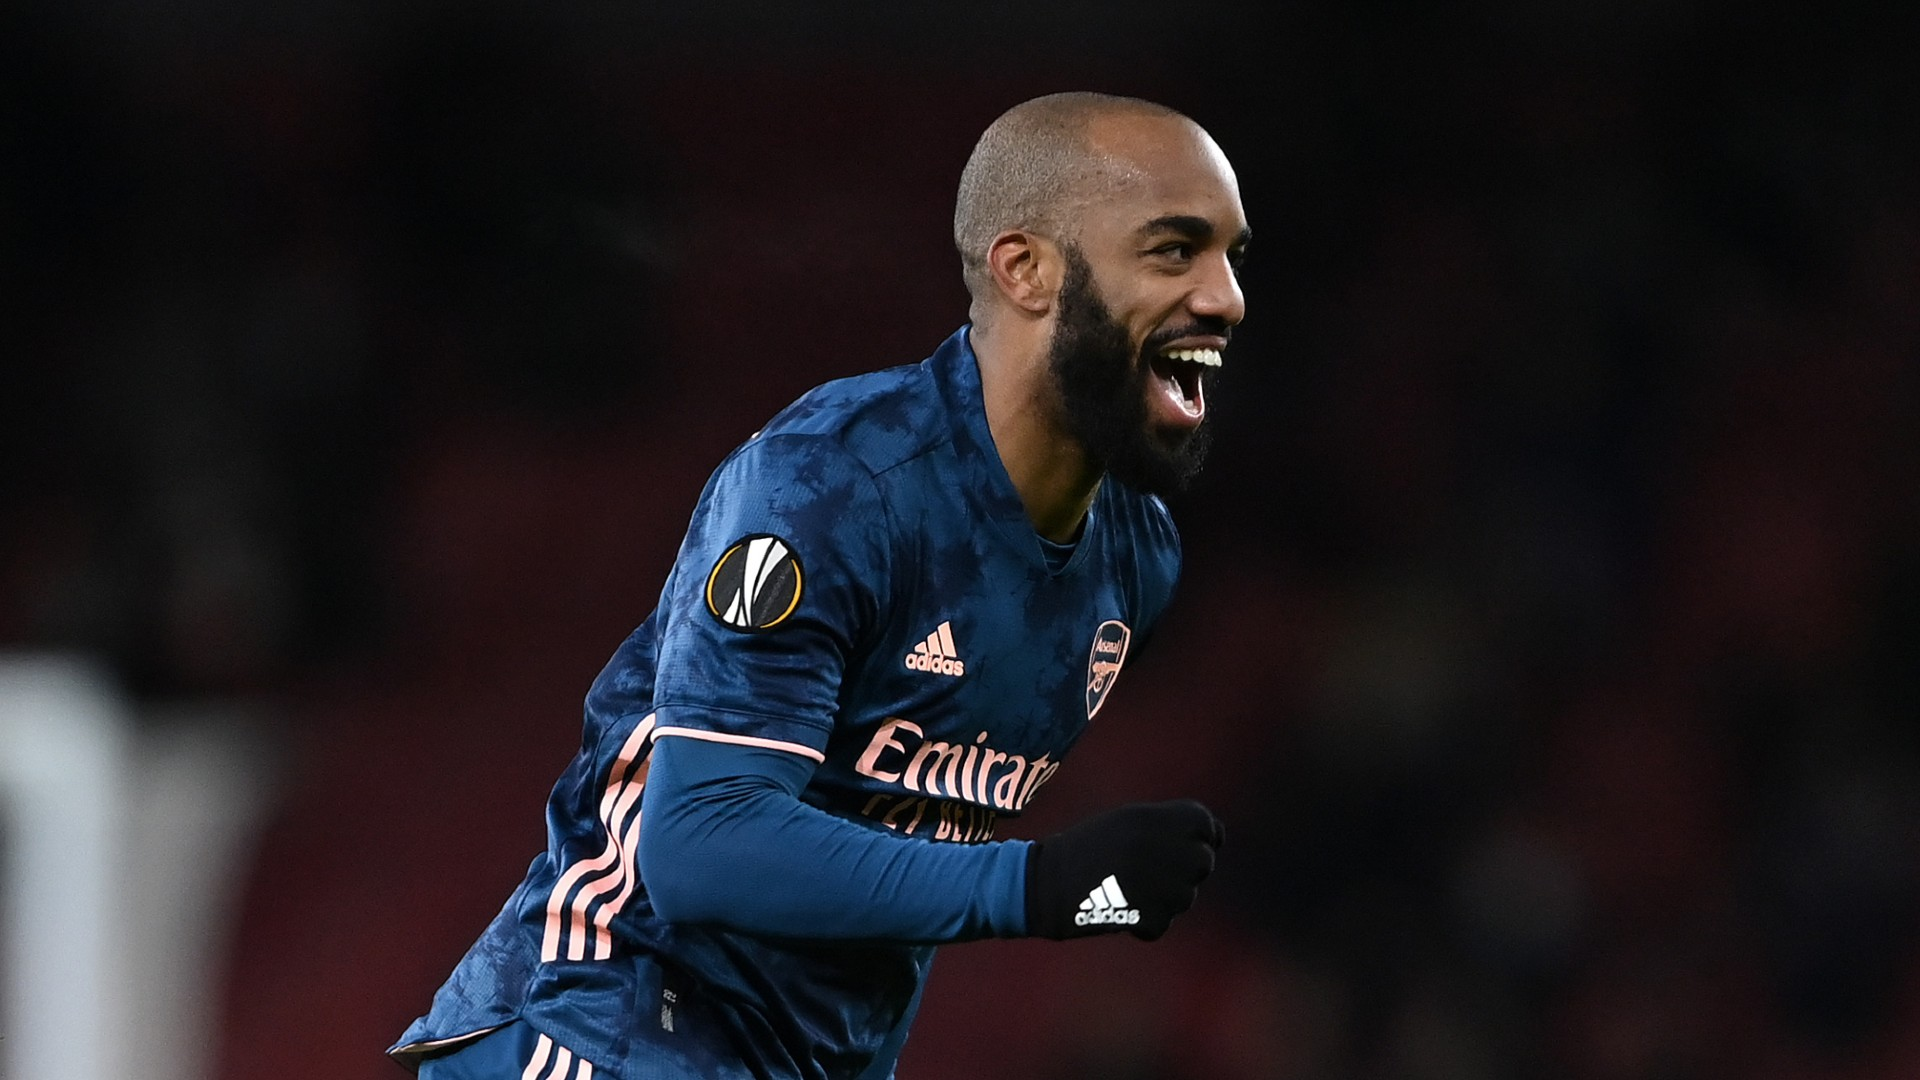 Lacazette and Arsenal give returning fans a show as Gunners warm up for Spurs in style